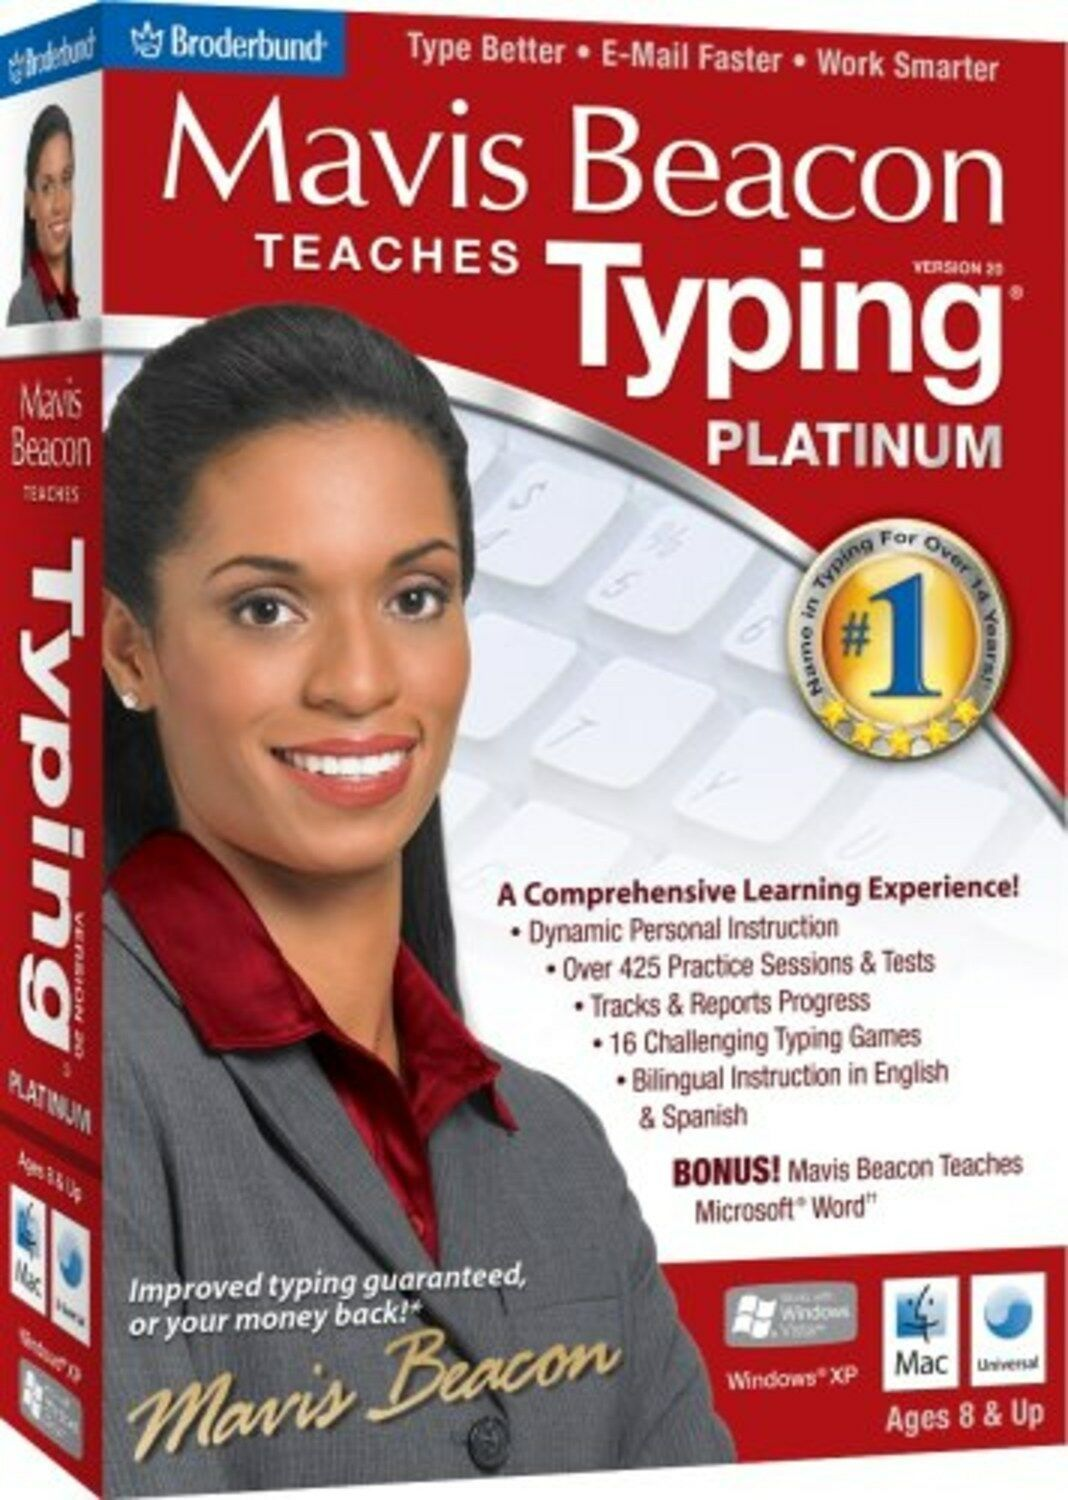 Mavis Beacon Teaches Typing Platinum 20 - Old Version